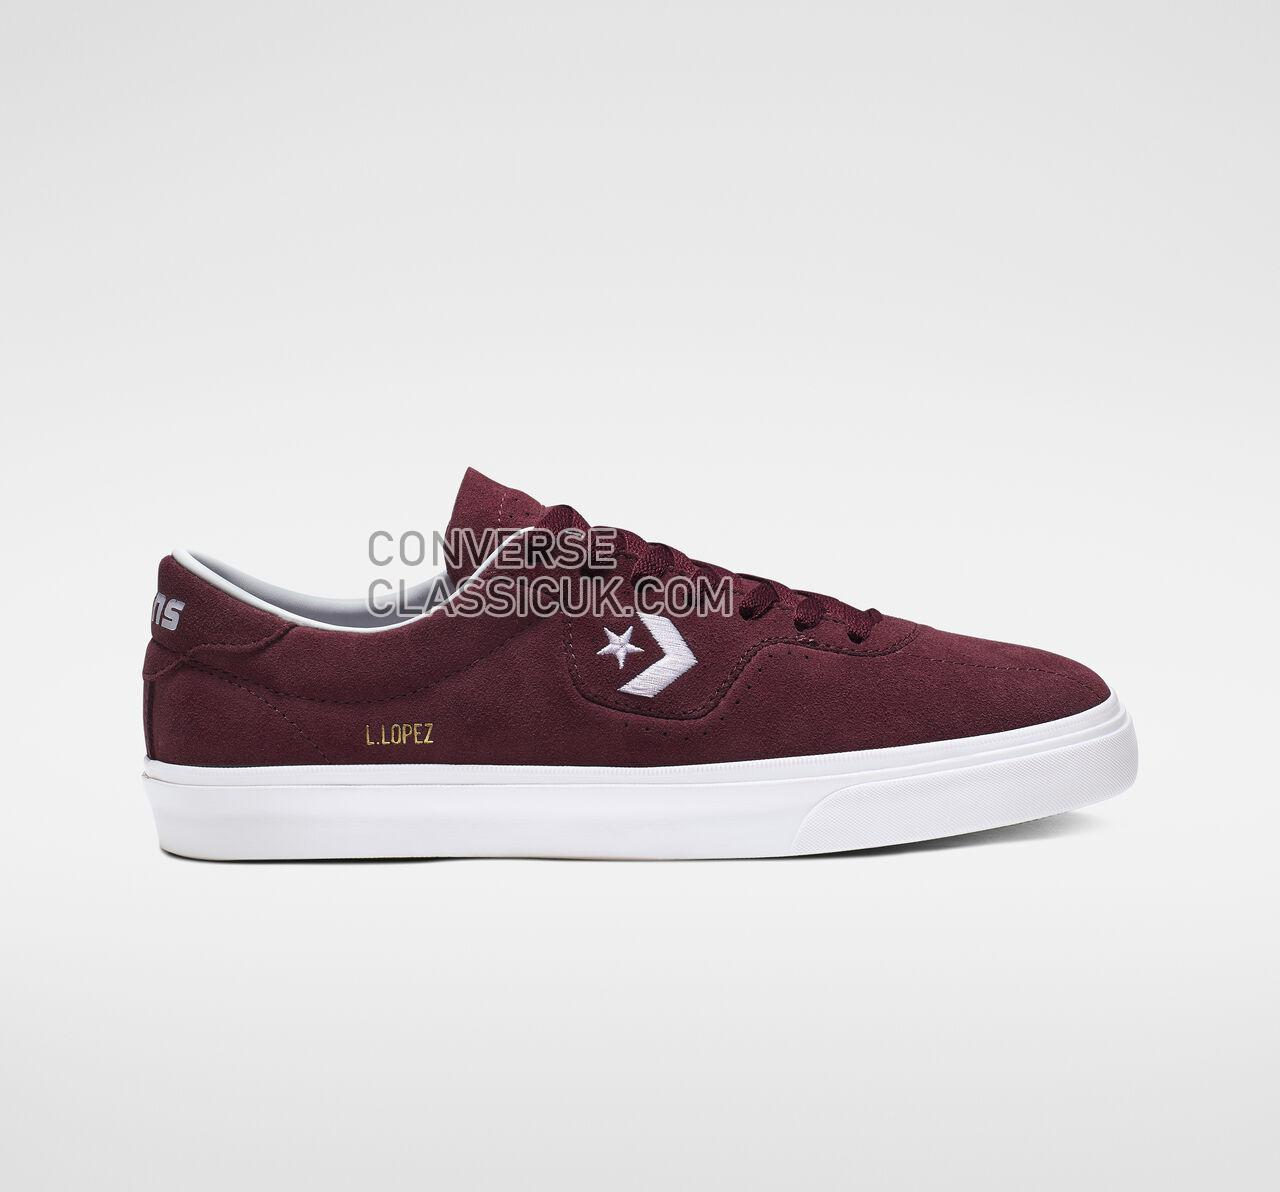 Converse Louie Lopez Pro Low Top Mens Womens Unisex 165272C Dark Burgundy/White/Gum Shoes